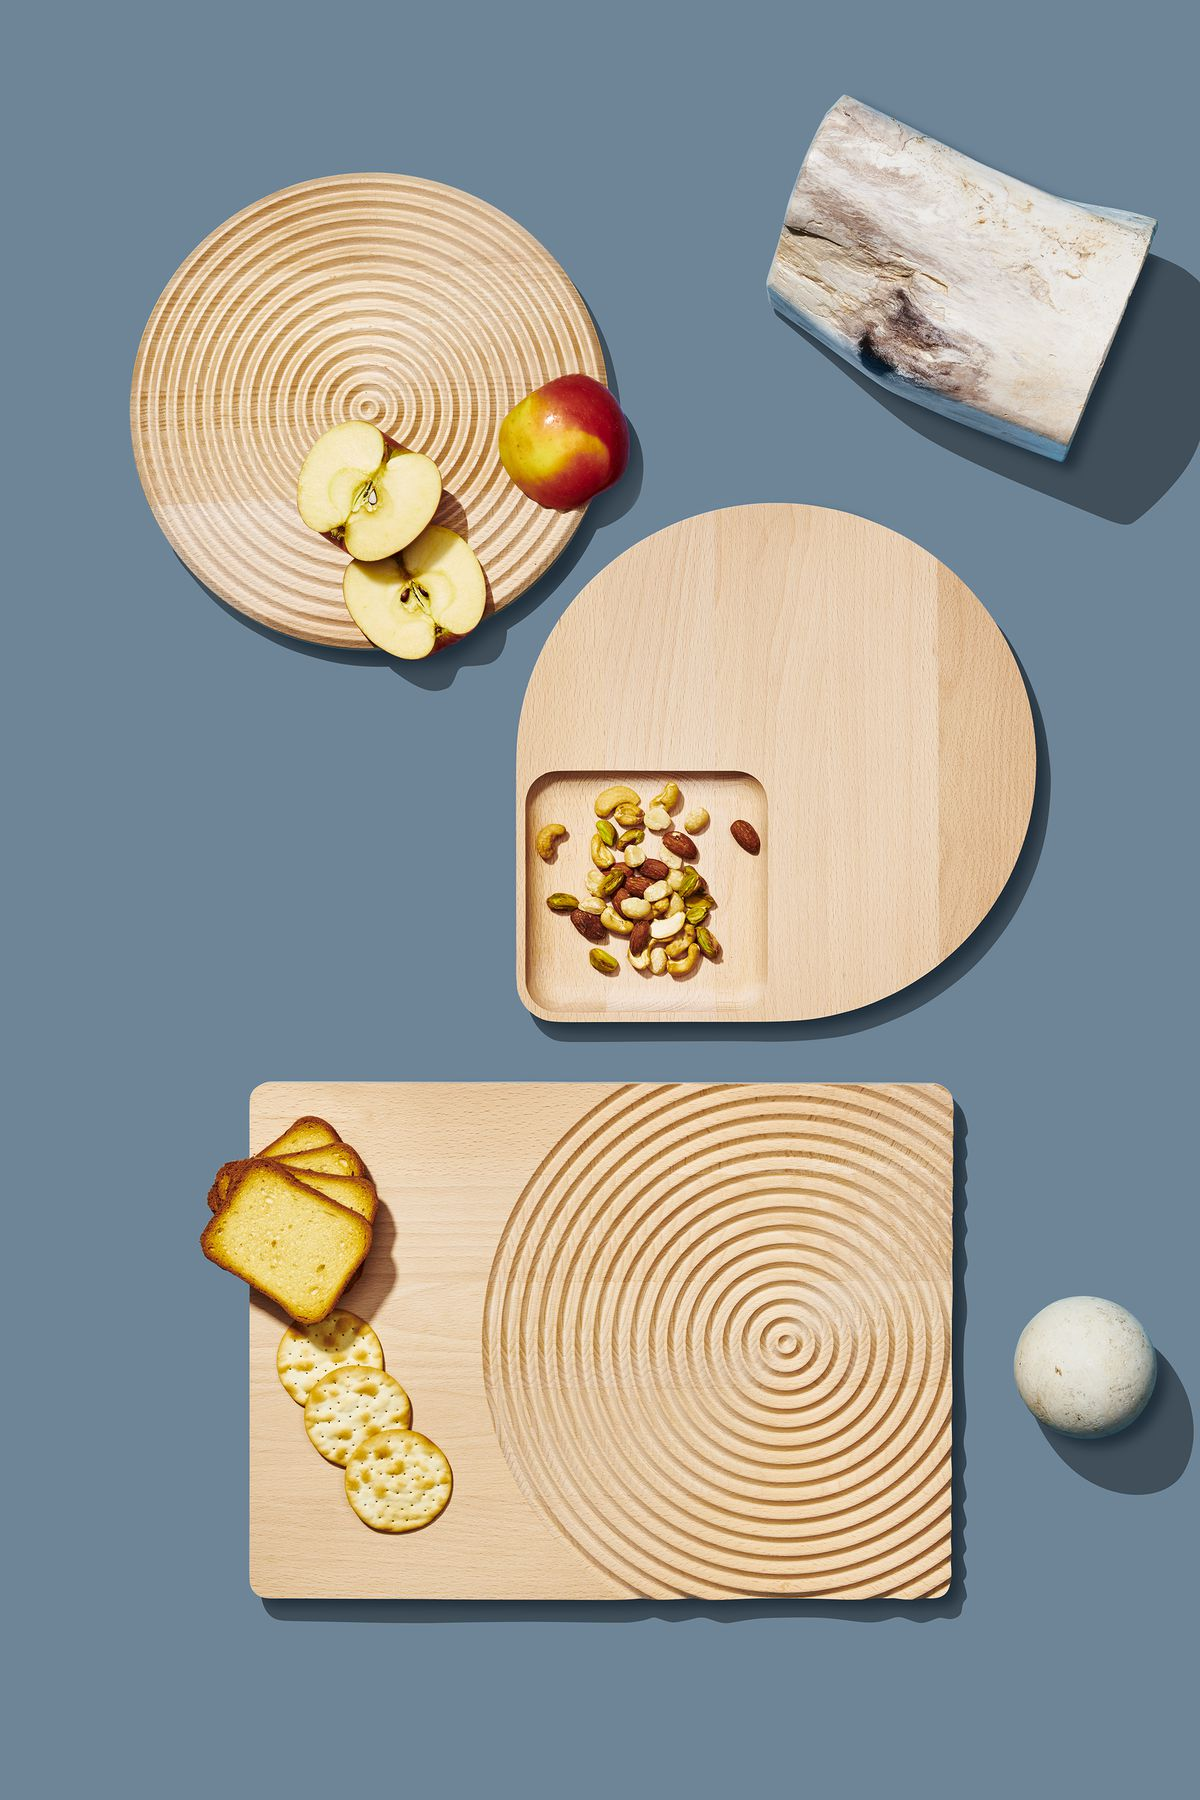 A group of three wooden cutting boards which are part of the Curbed Holiday Gift Guide 2019. On the cutting boards are crackers, bread, a sliced apple, and assorted nuts. There are various design objects arranged around the boards.